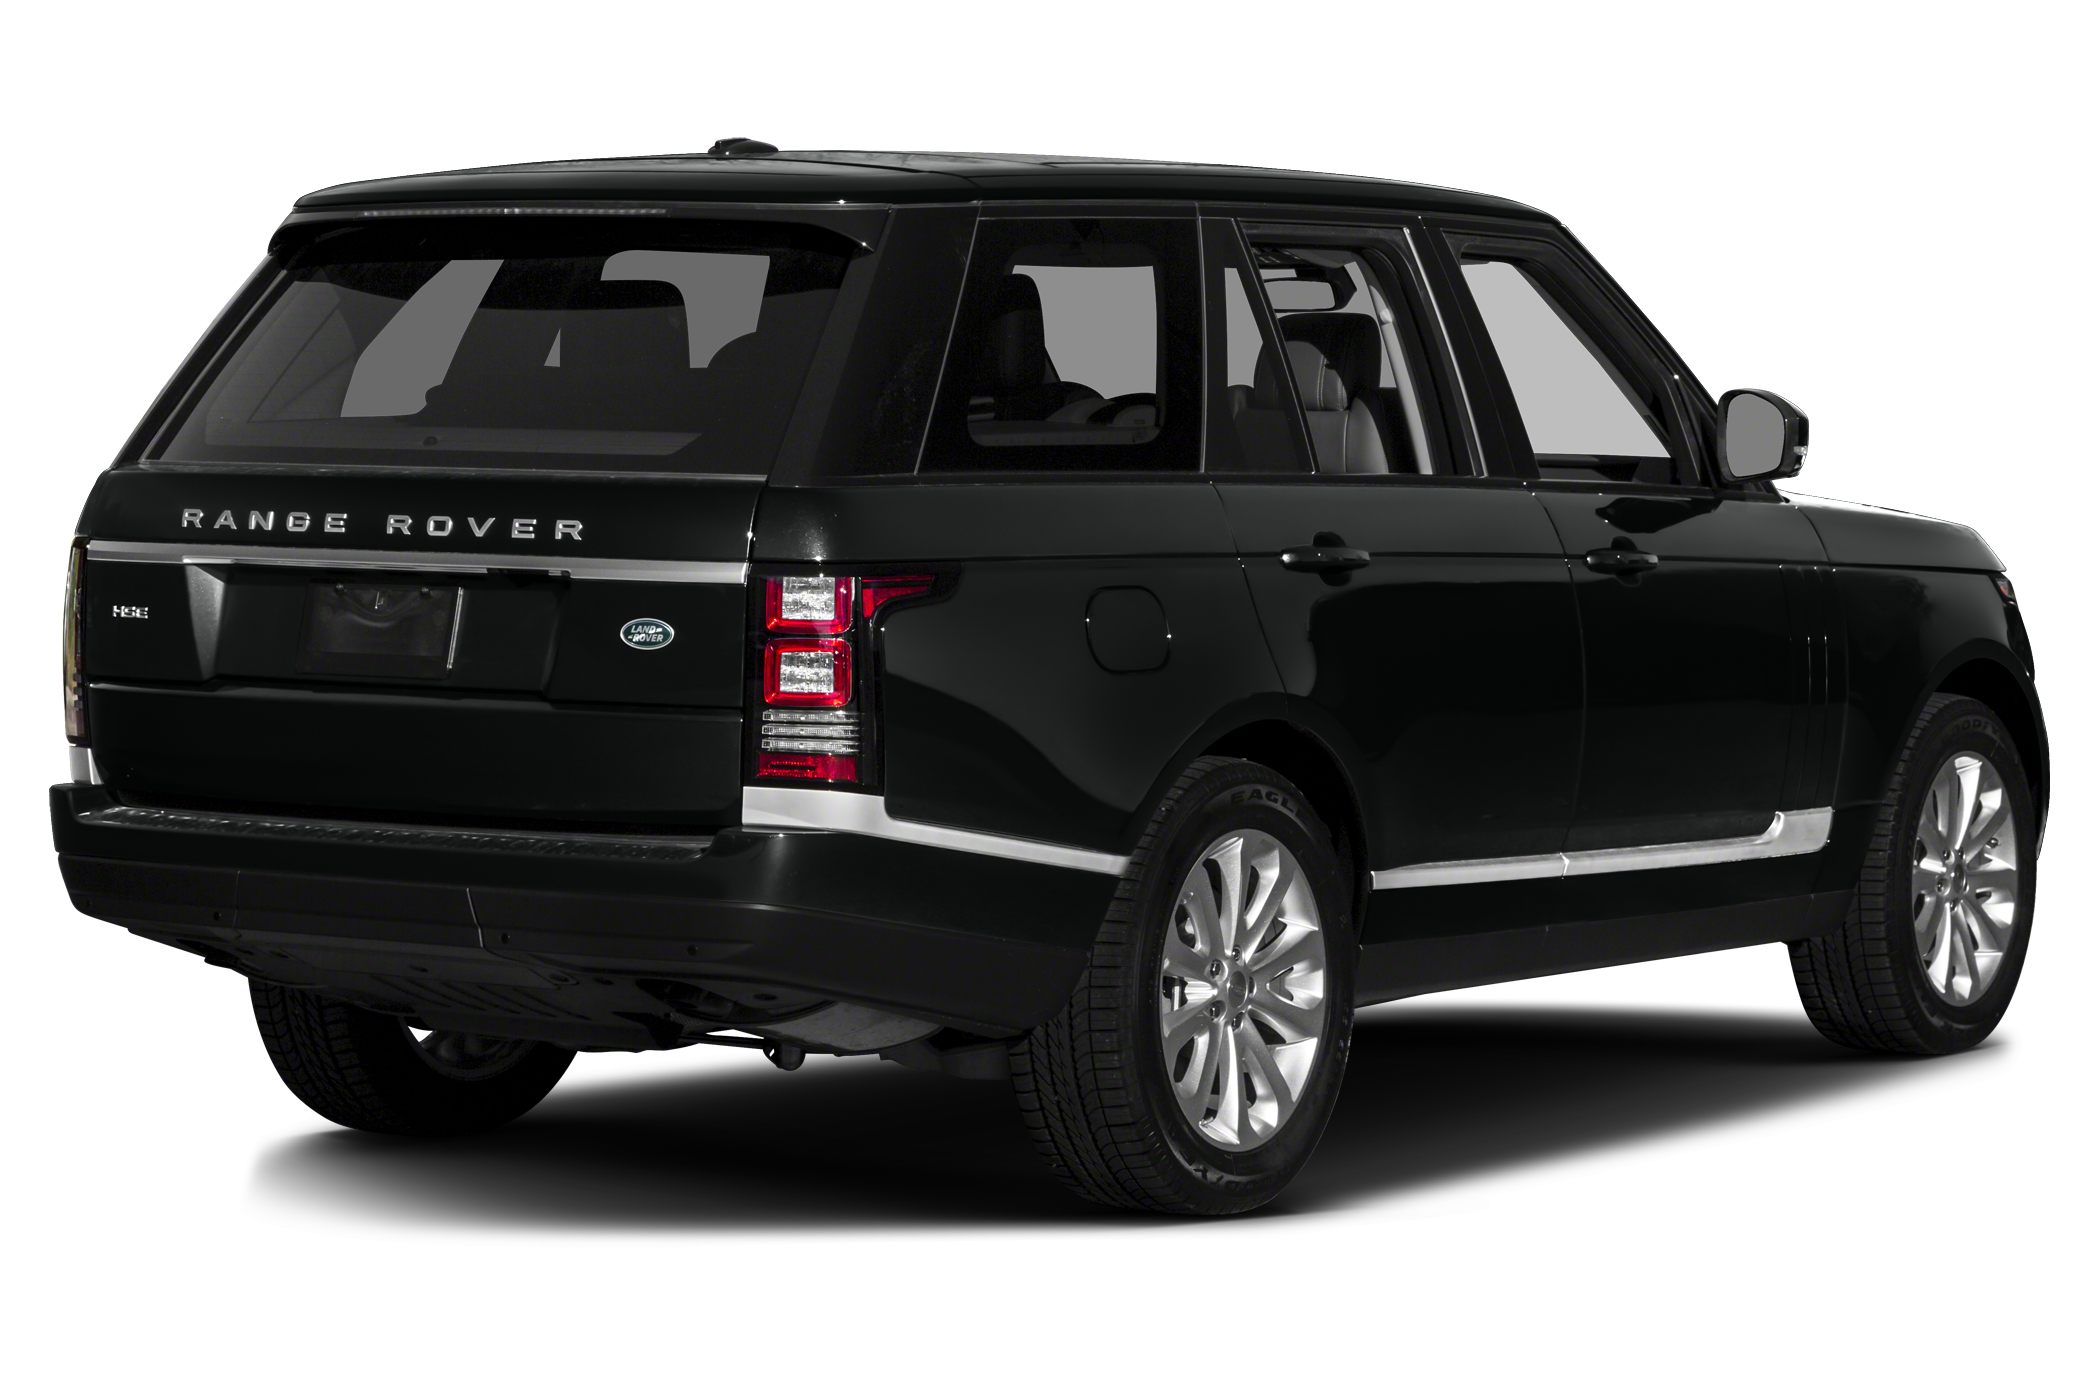 Land rover range rover photo - 3